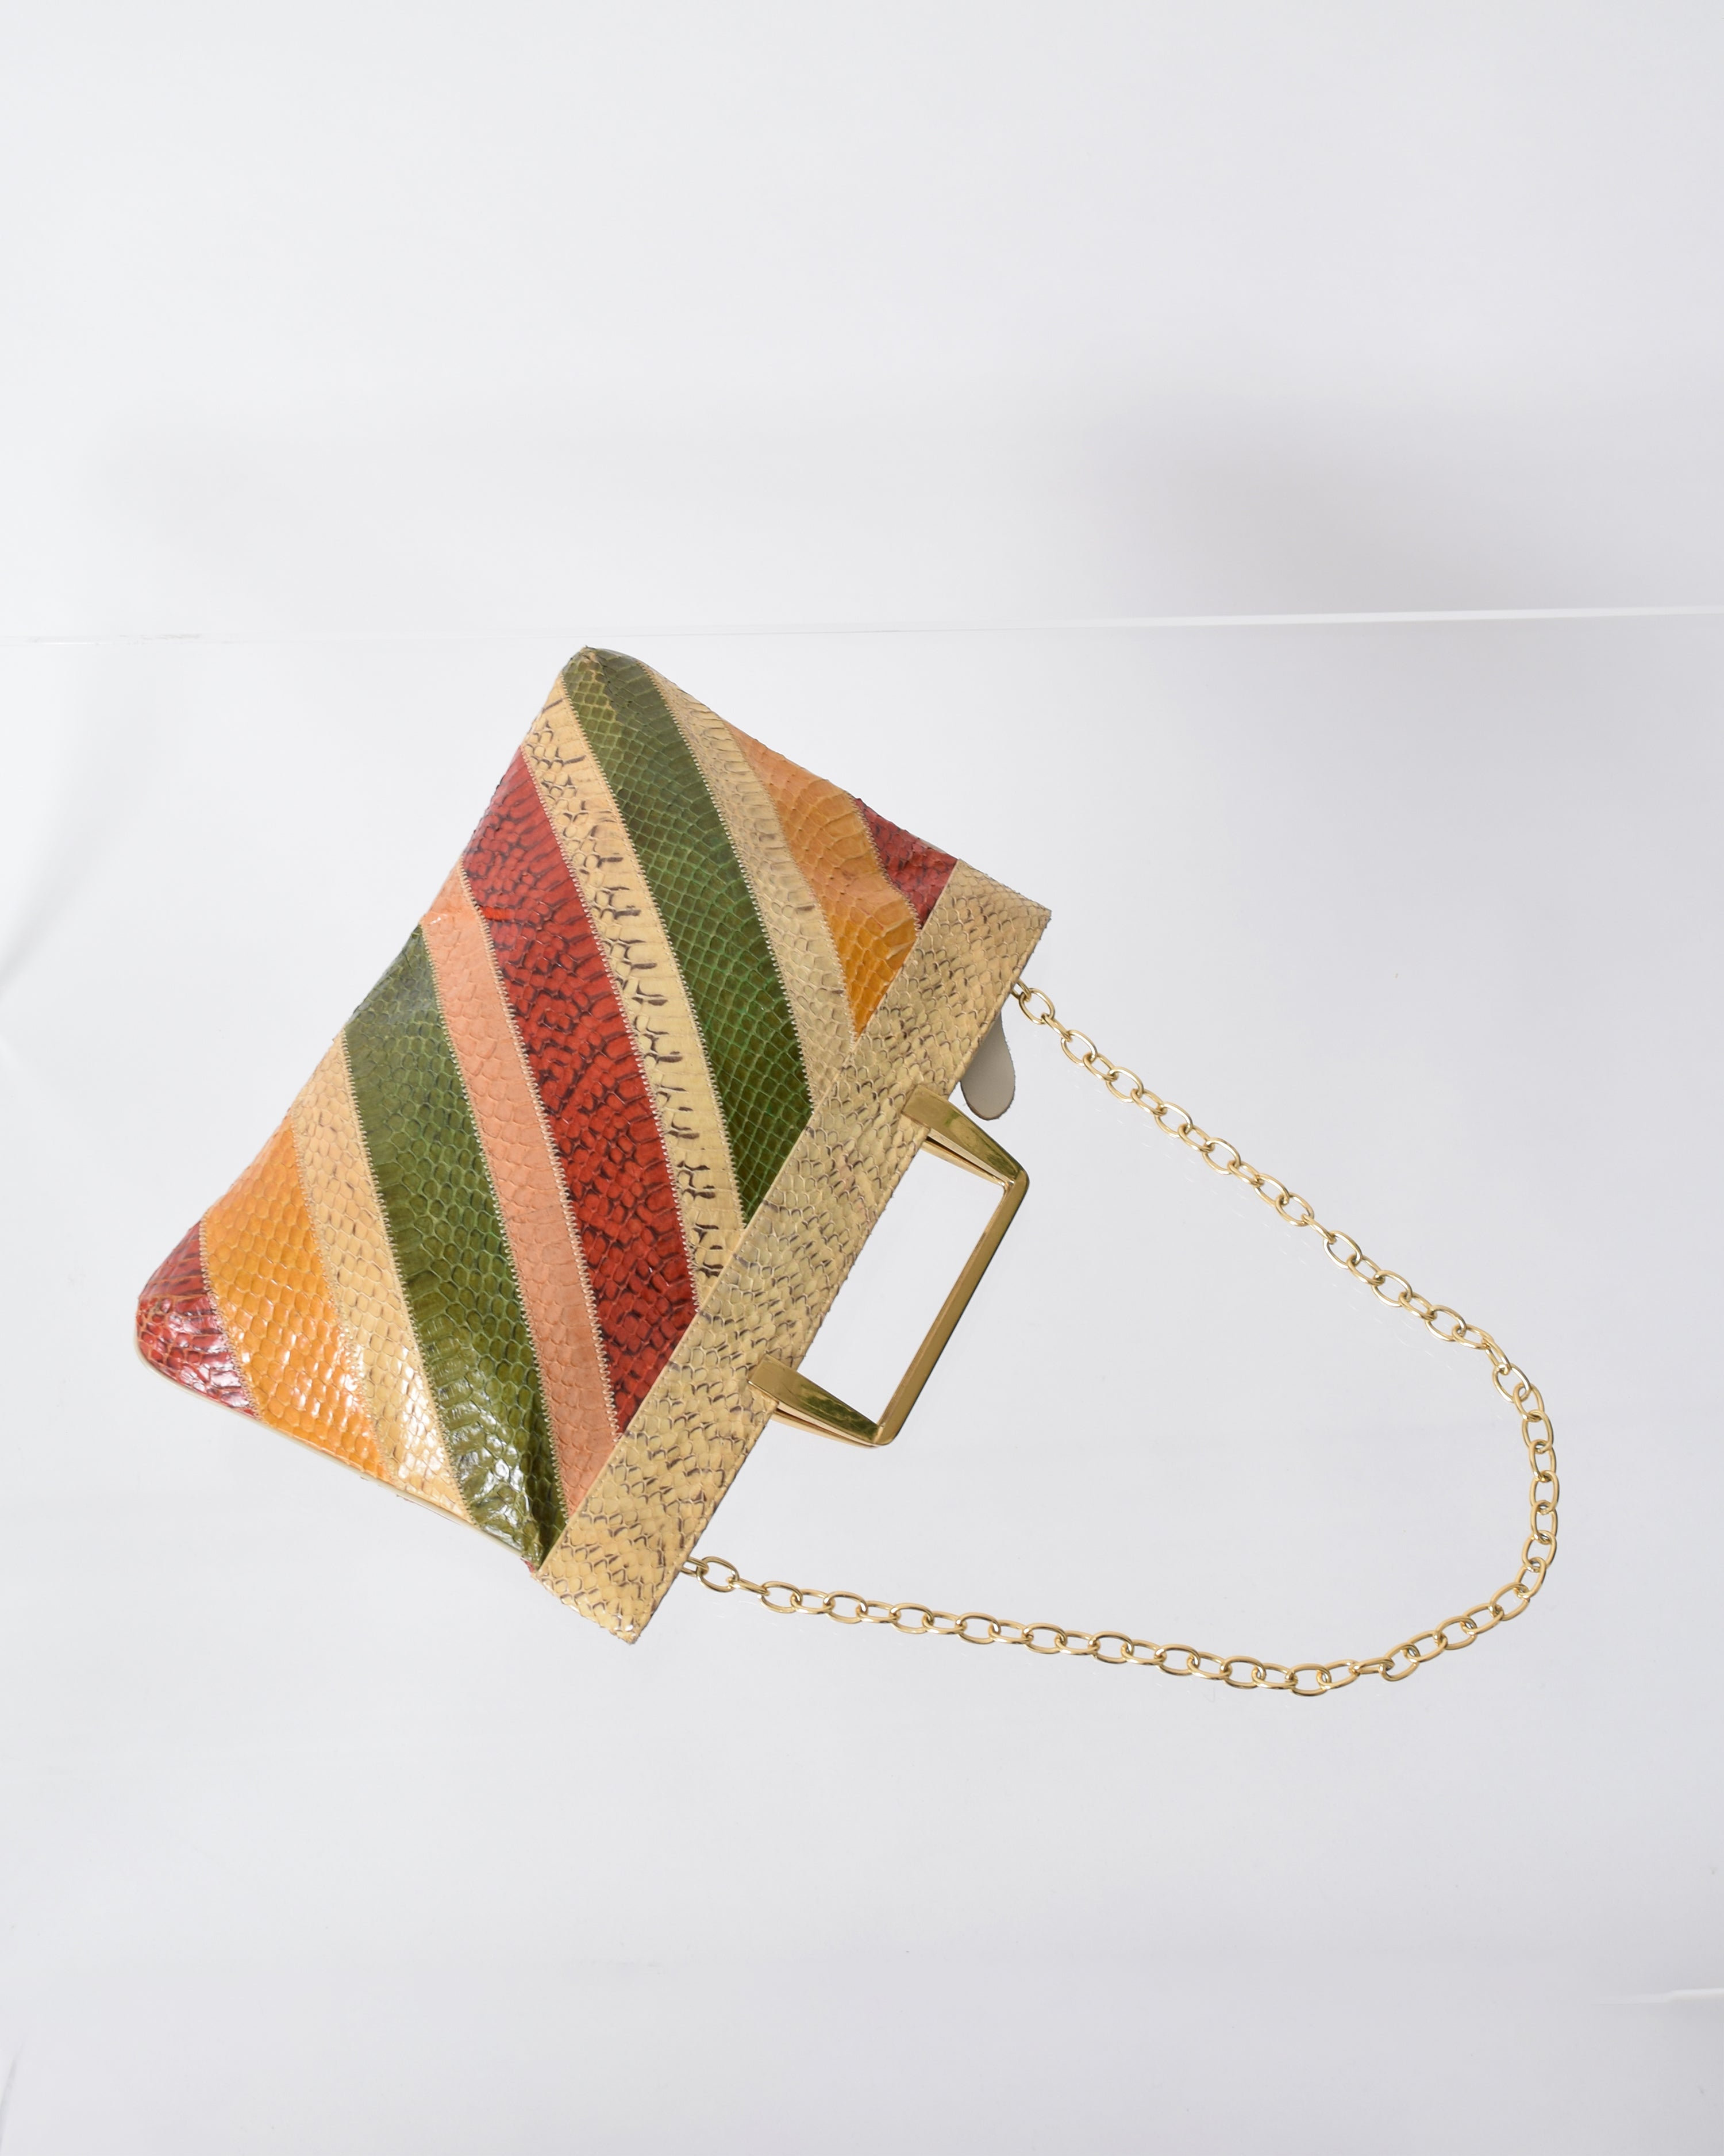 Vintage Striped Snakeskin Handbag